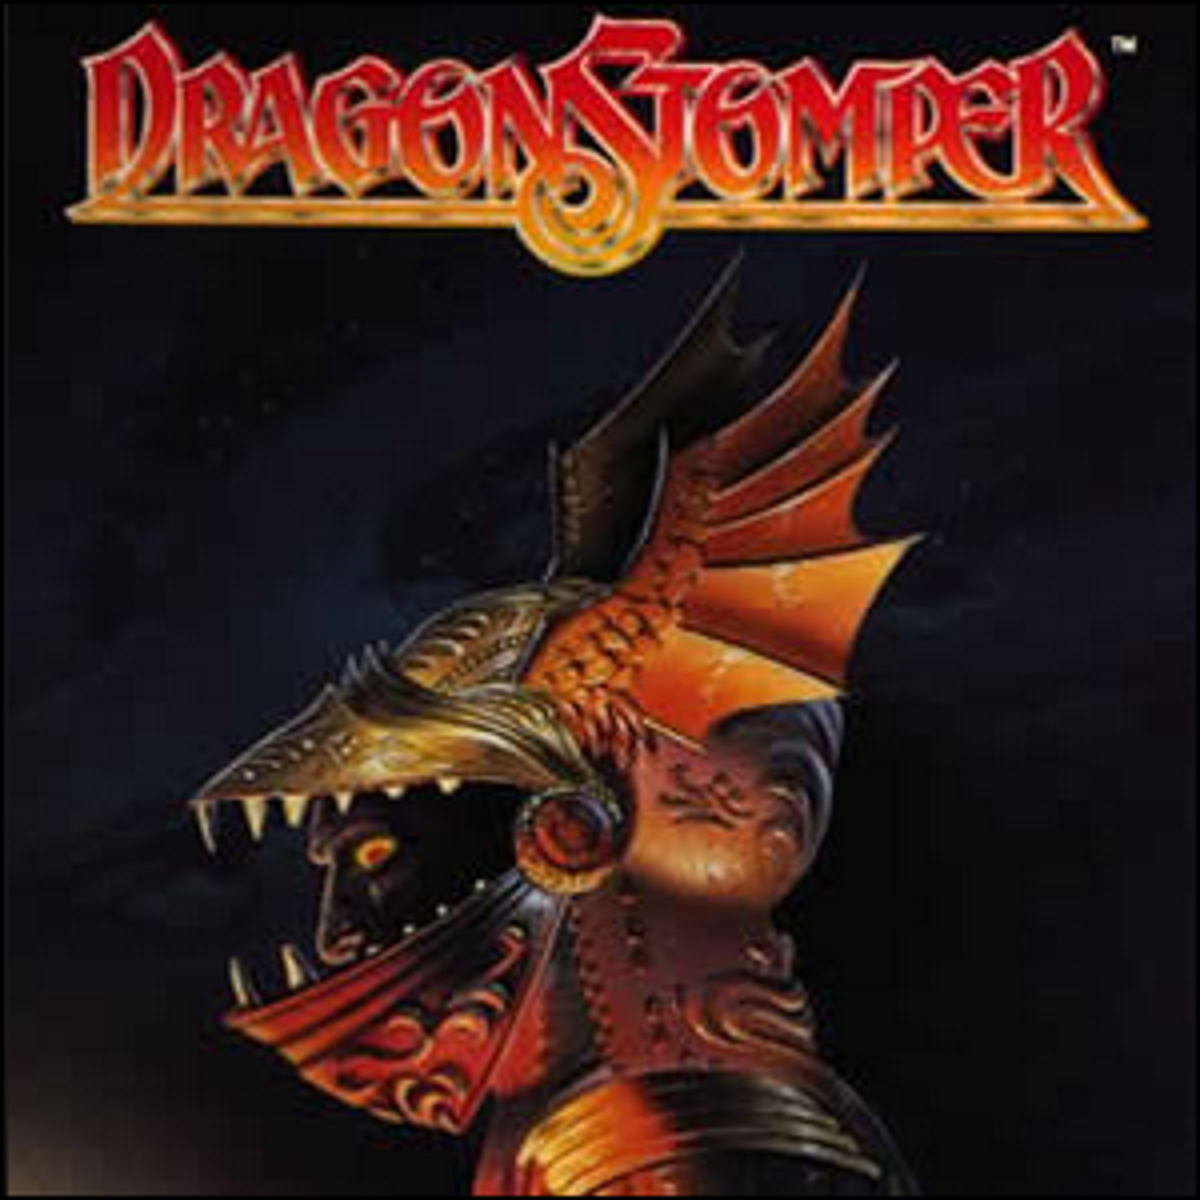 The cover of Dragonstomper with artwork depicting a man in dragon-themed armor.